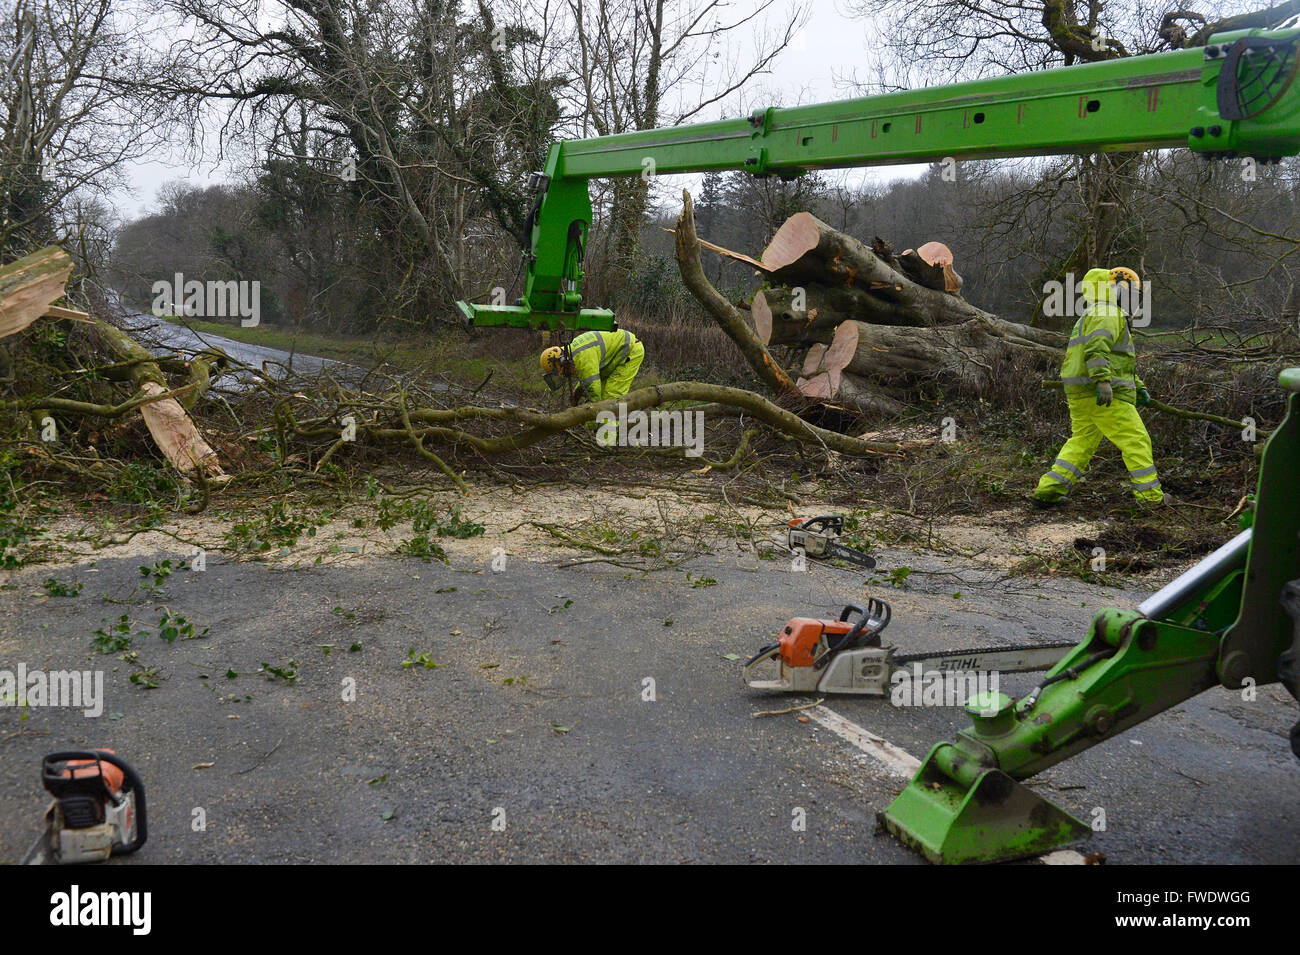 Clearing trees felled by gales force winds in Londonderry, Northern Ireland. - Stock Image